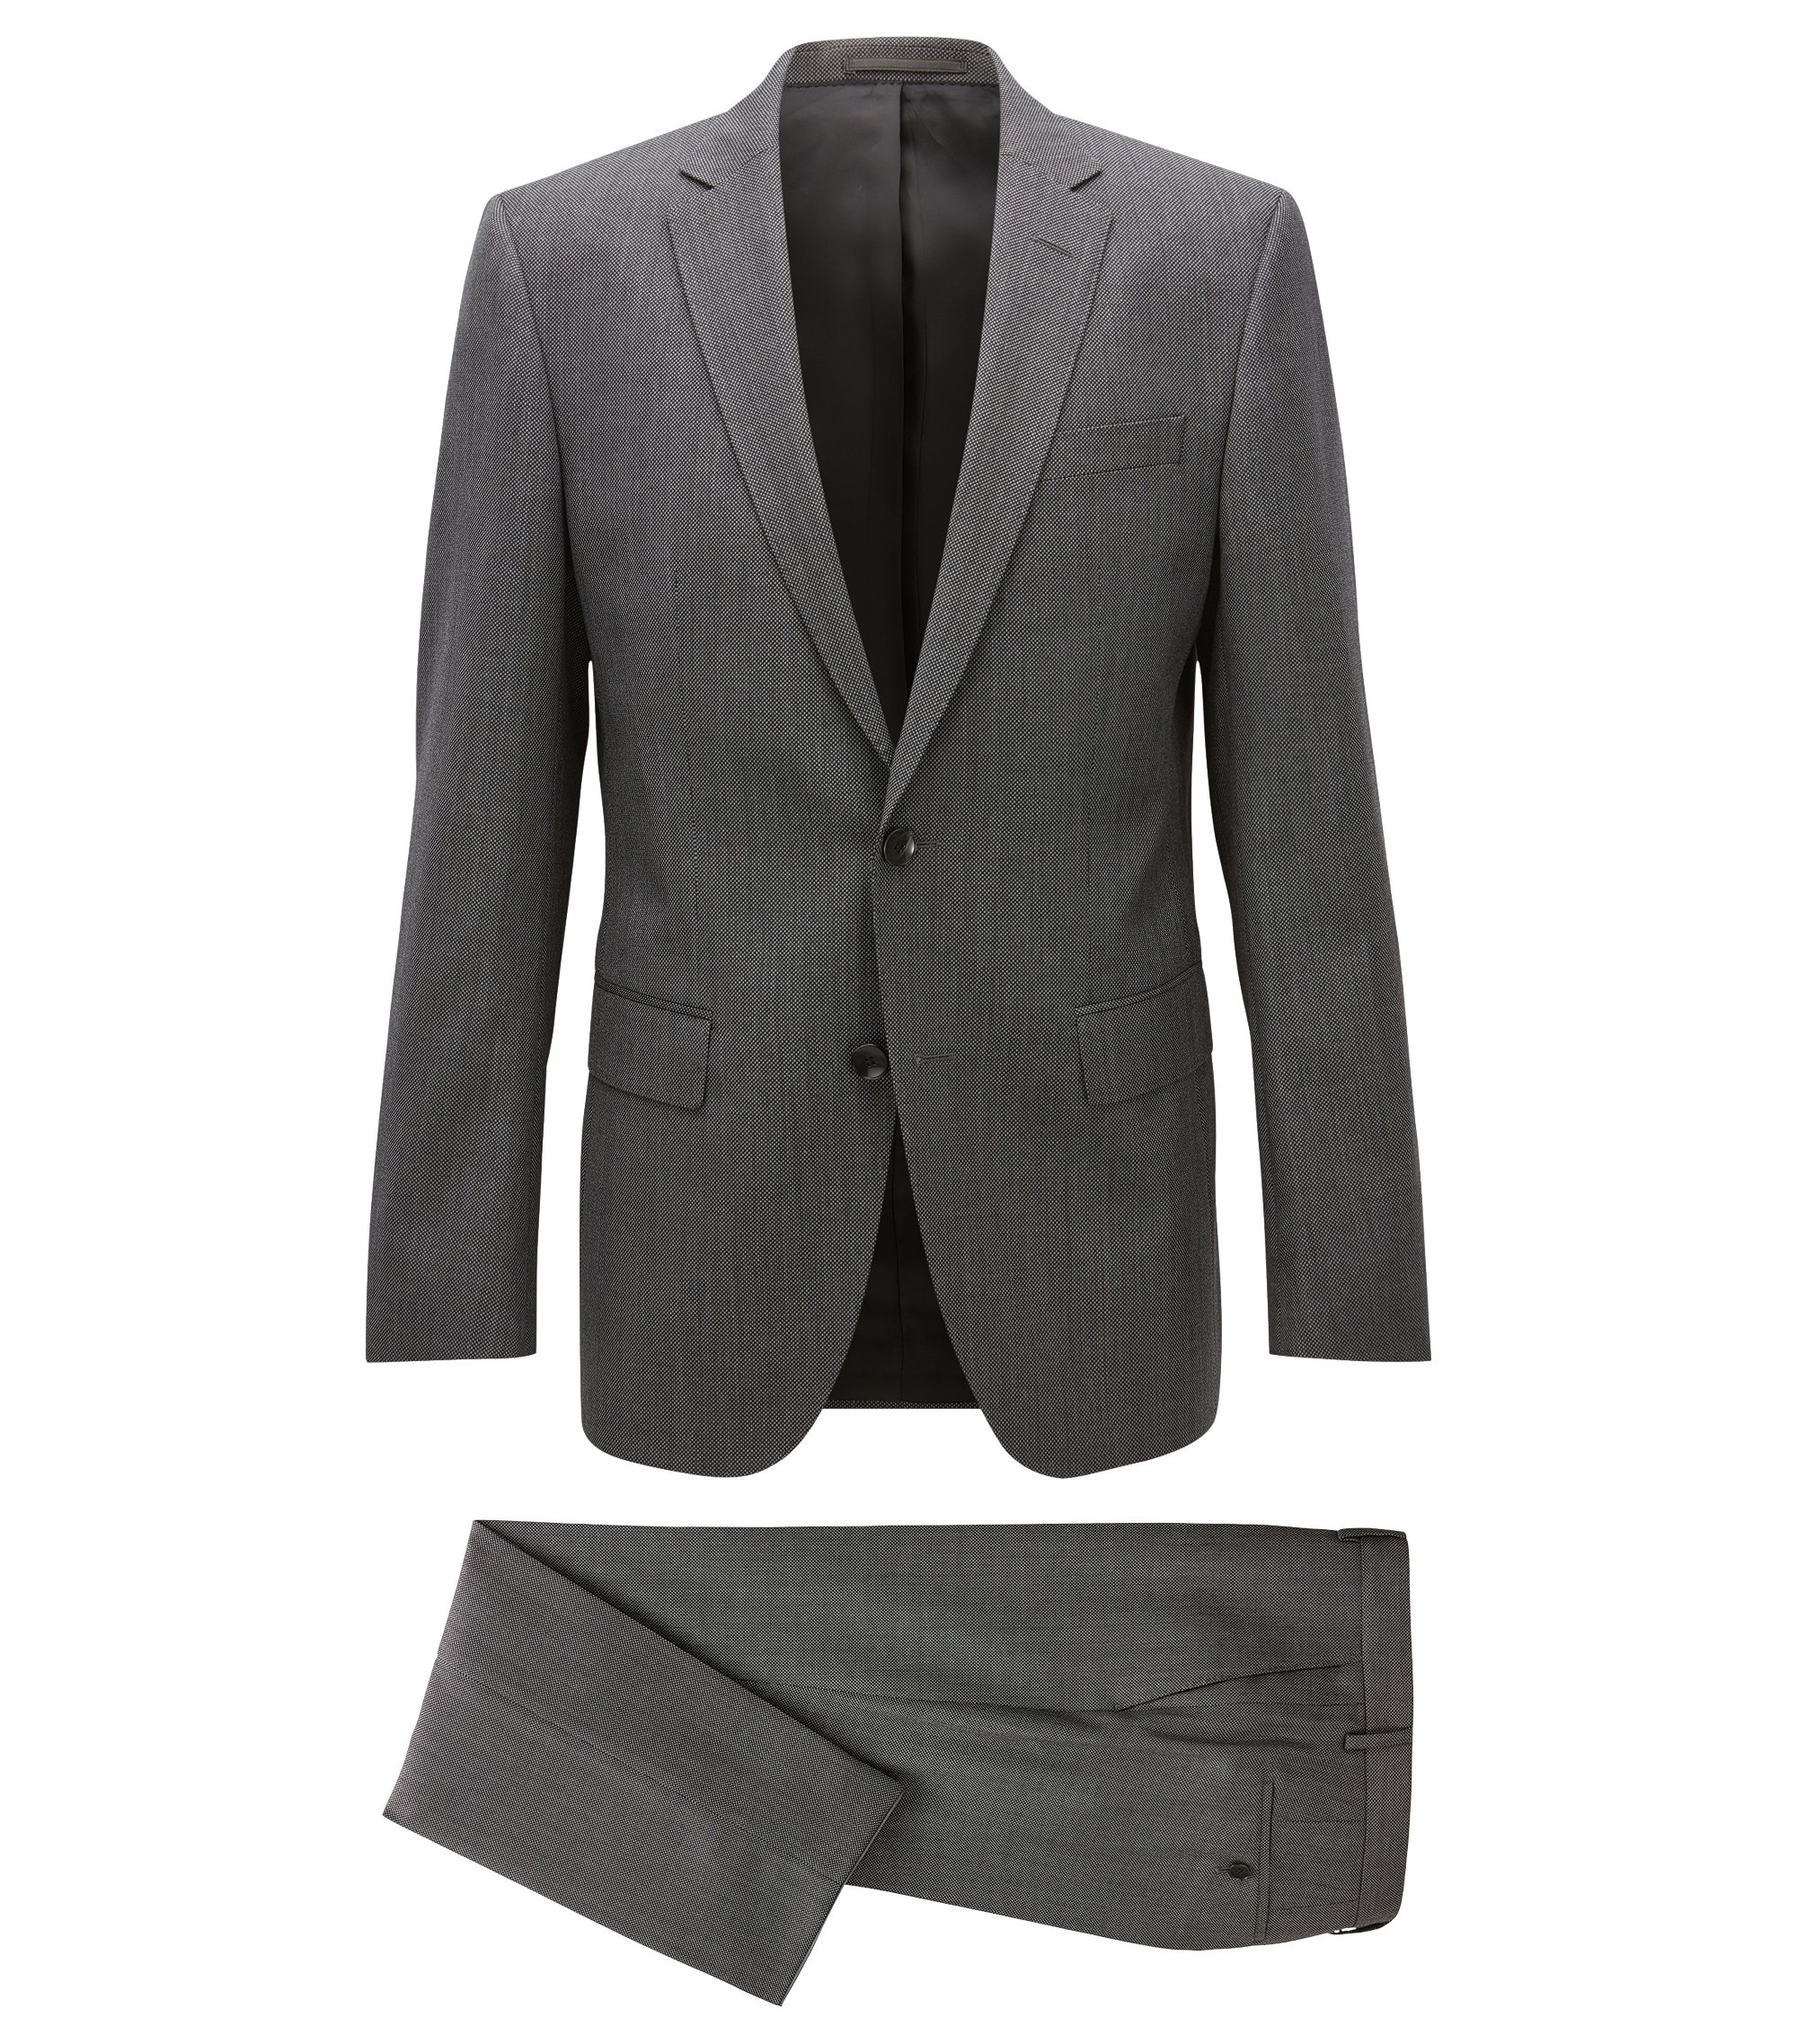 Birdseye Italian Virgin Wool Suit, Slim Fit | Huge/Genius, Grey